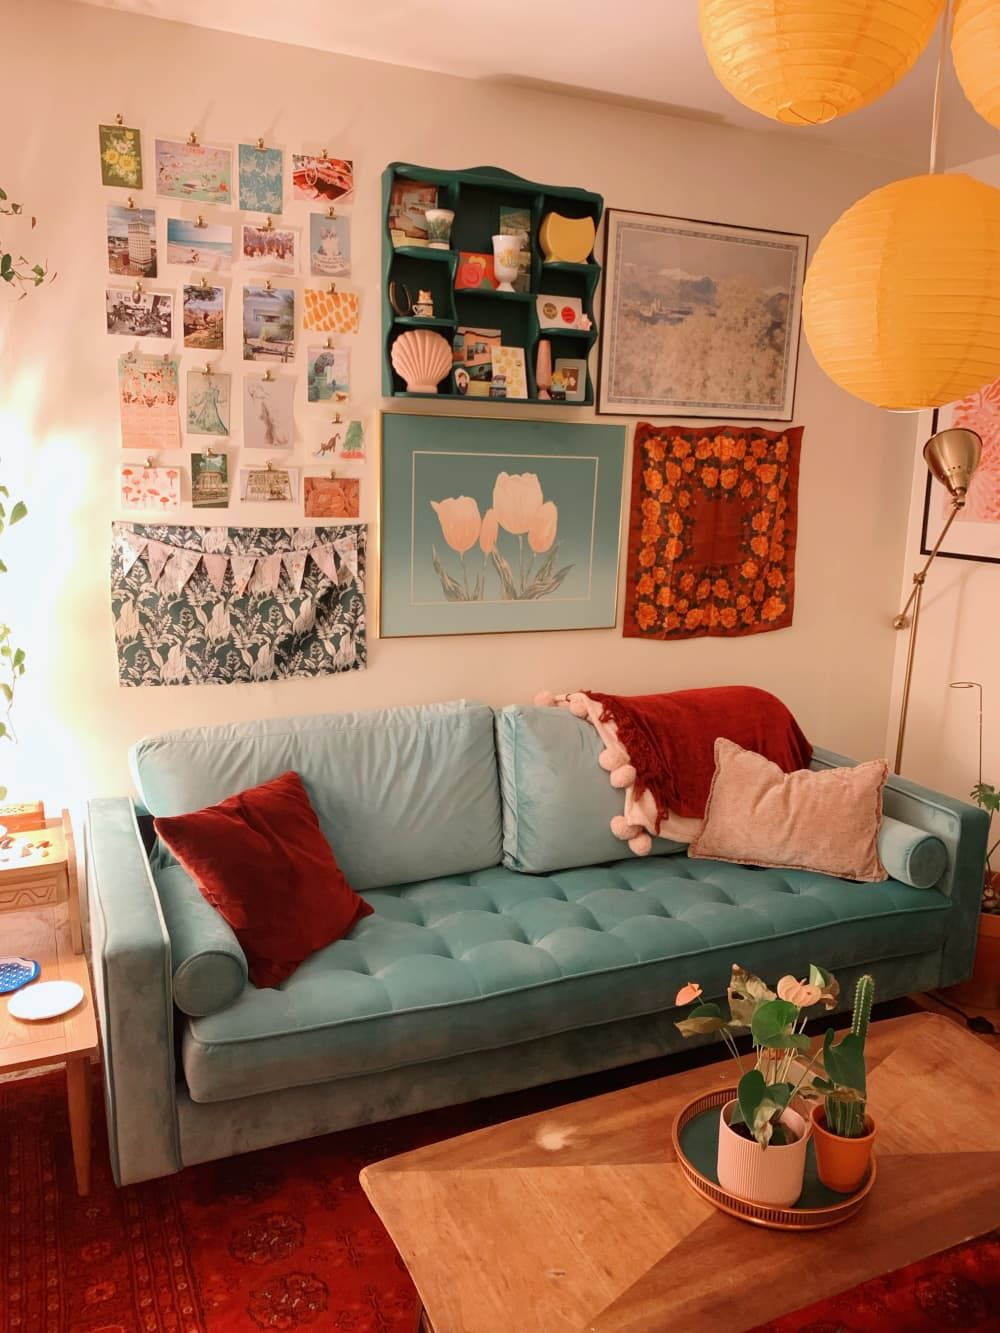 A Studio Apartment Didn T Come With A Kitchen So This Renter Turned A Closet Into One In 2020 Bachelor Apartments Studio Apartment Apartment